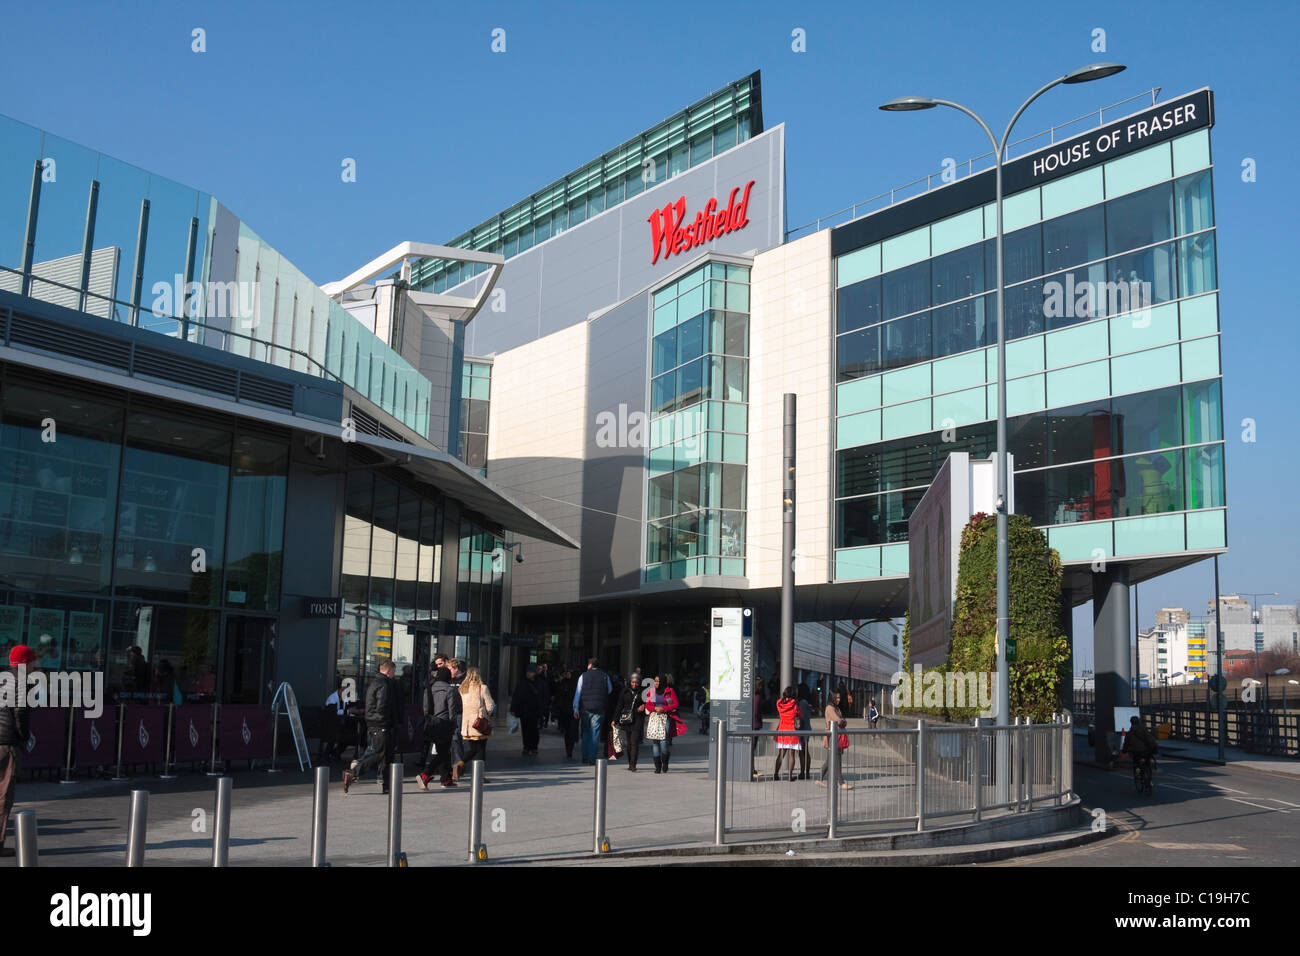 A landscape picture of the Westfield shopping centre in Shepherds Bush, London, UK Stock Photo